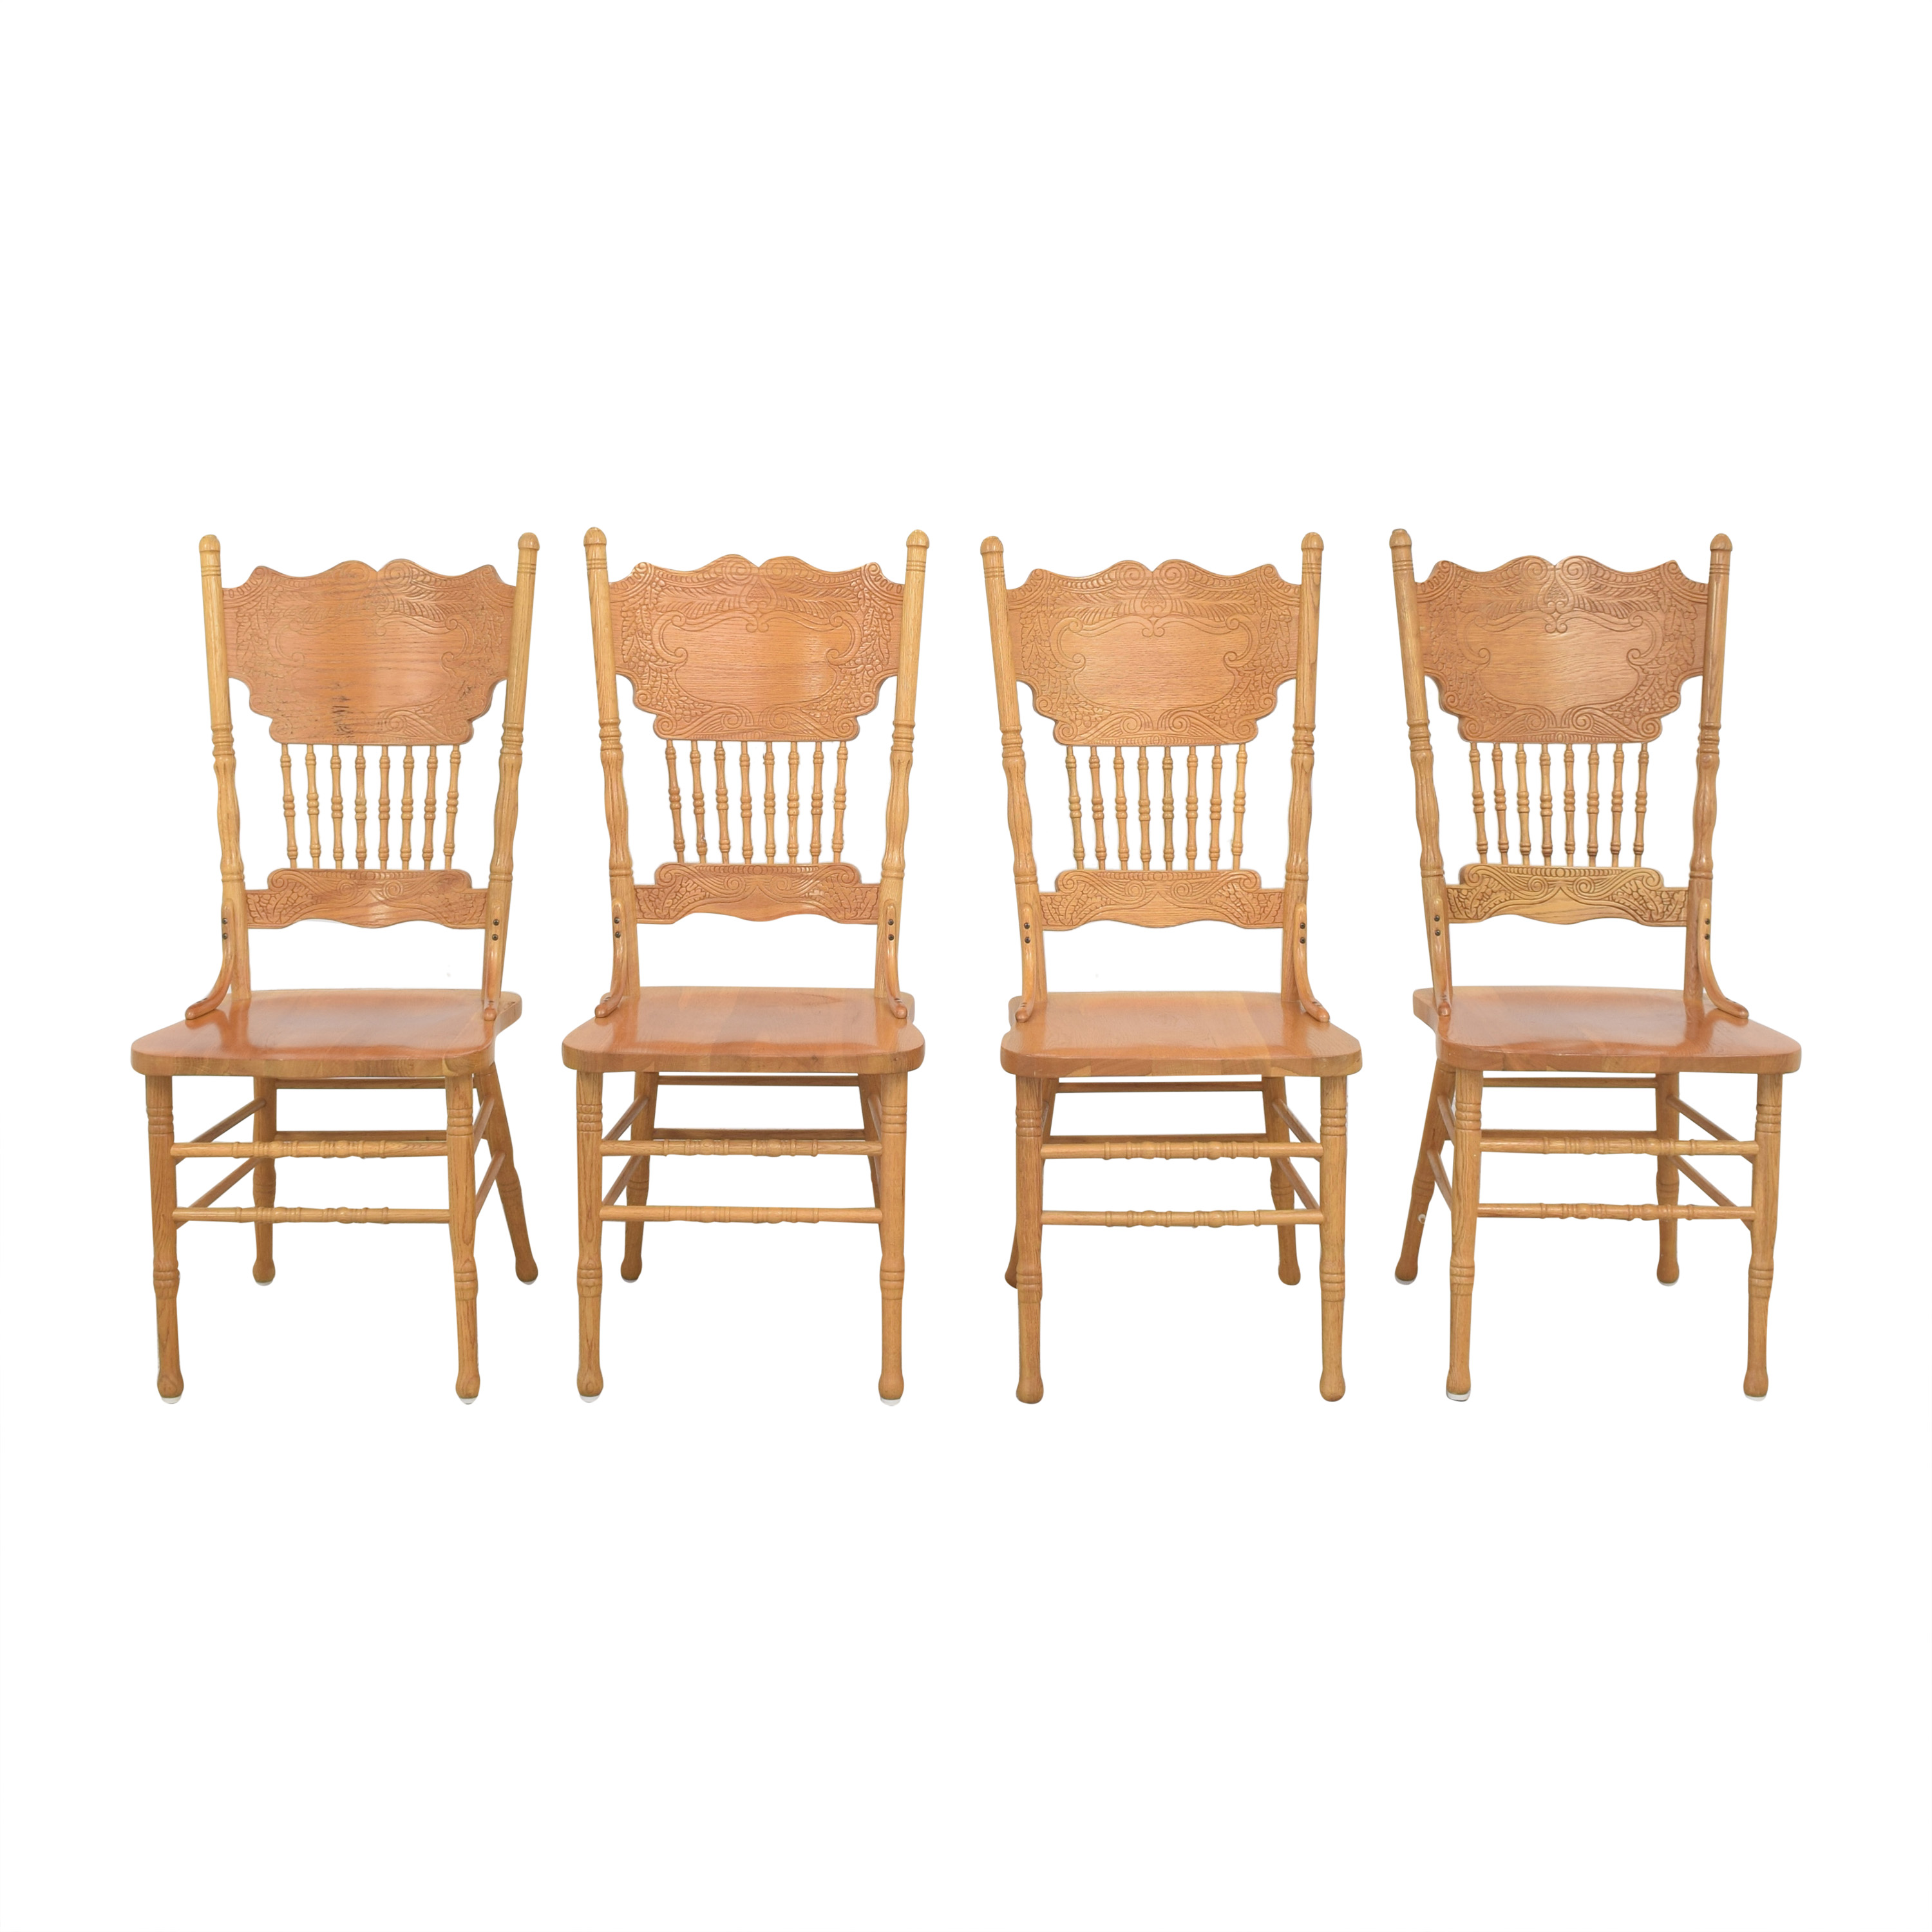 A-America Wood Furniture A-America Wood Carved Dining Chairs dimensions